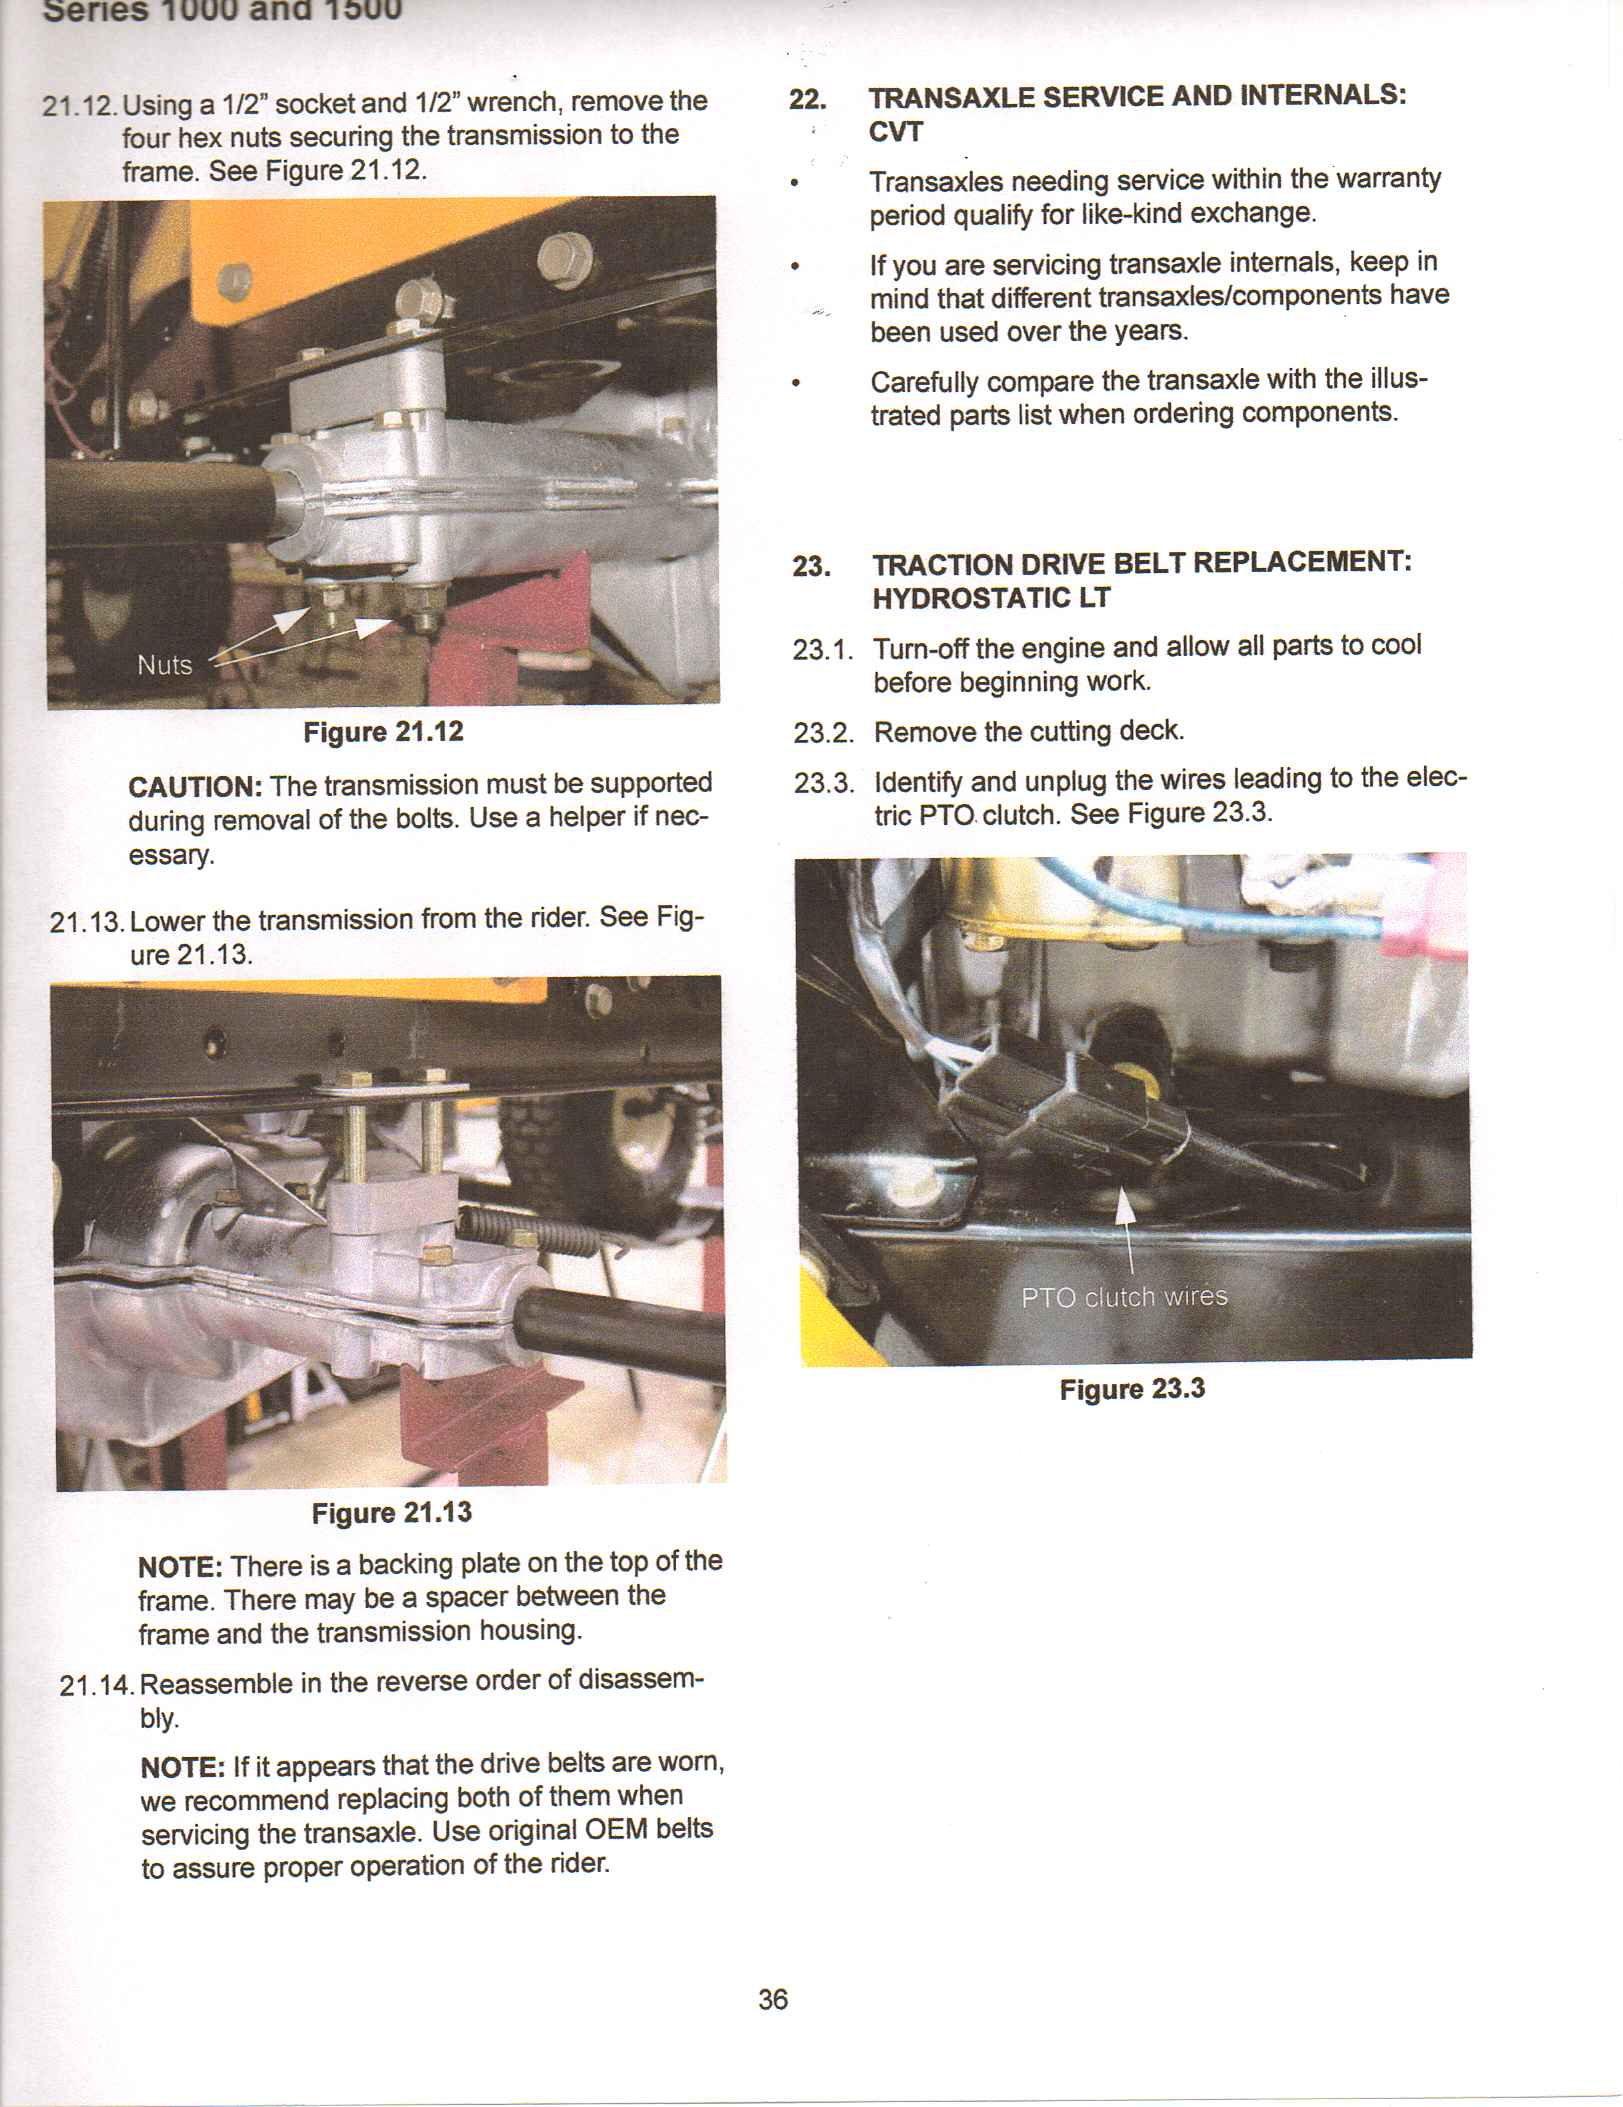 Watch in addition Cub Cadet Lt1042 Parts Diagram likewise Cub Cadet Mower Belt Installation Repair And Replacement Of V Belts On Cub Cadet Tractor Cub Cadet 1054 Deck Belt Keeps  ing Off moreover 6rtur Lt1042 Model 13bx11cg712 Transmission Stopped Working besides 100546396. on cub cadet lt1042 belt size